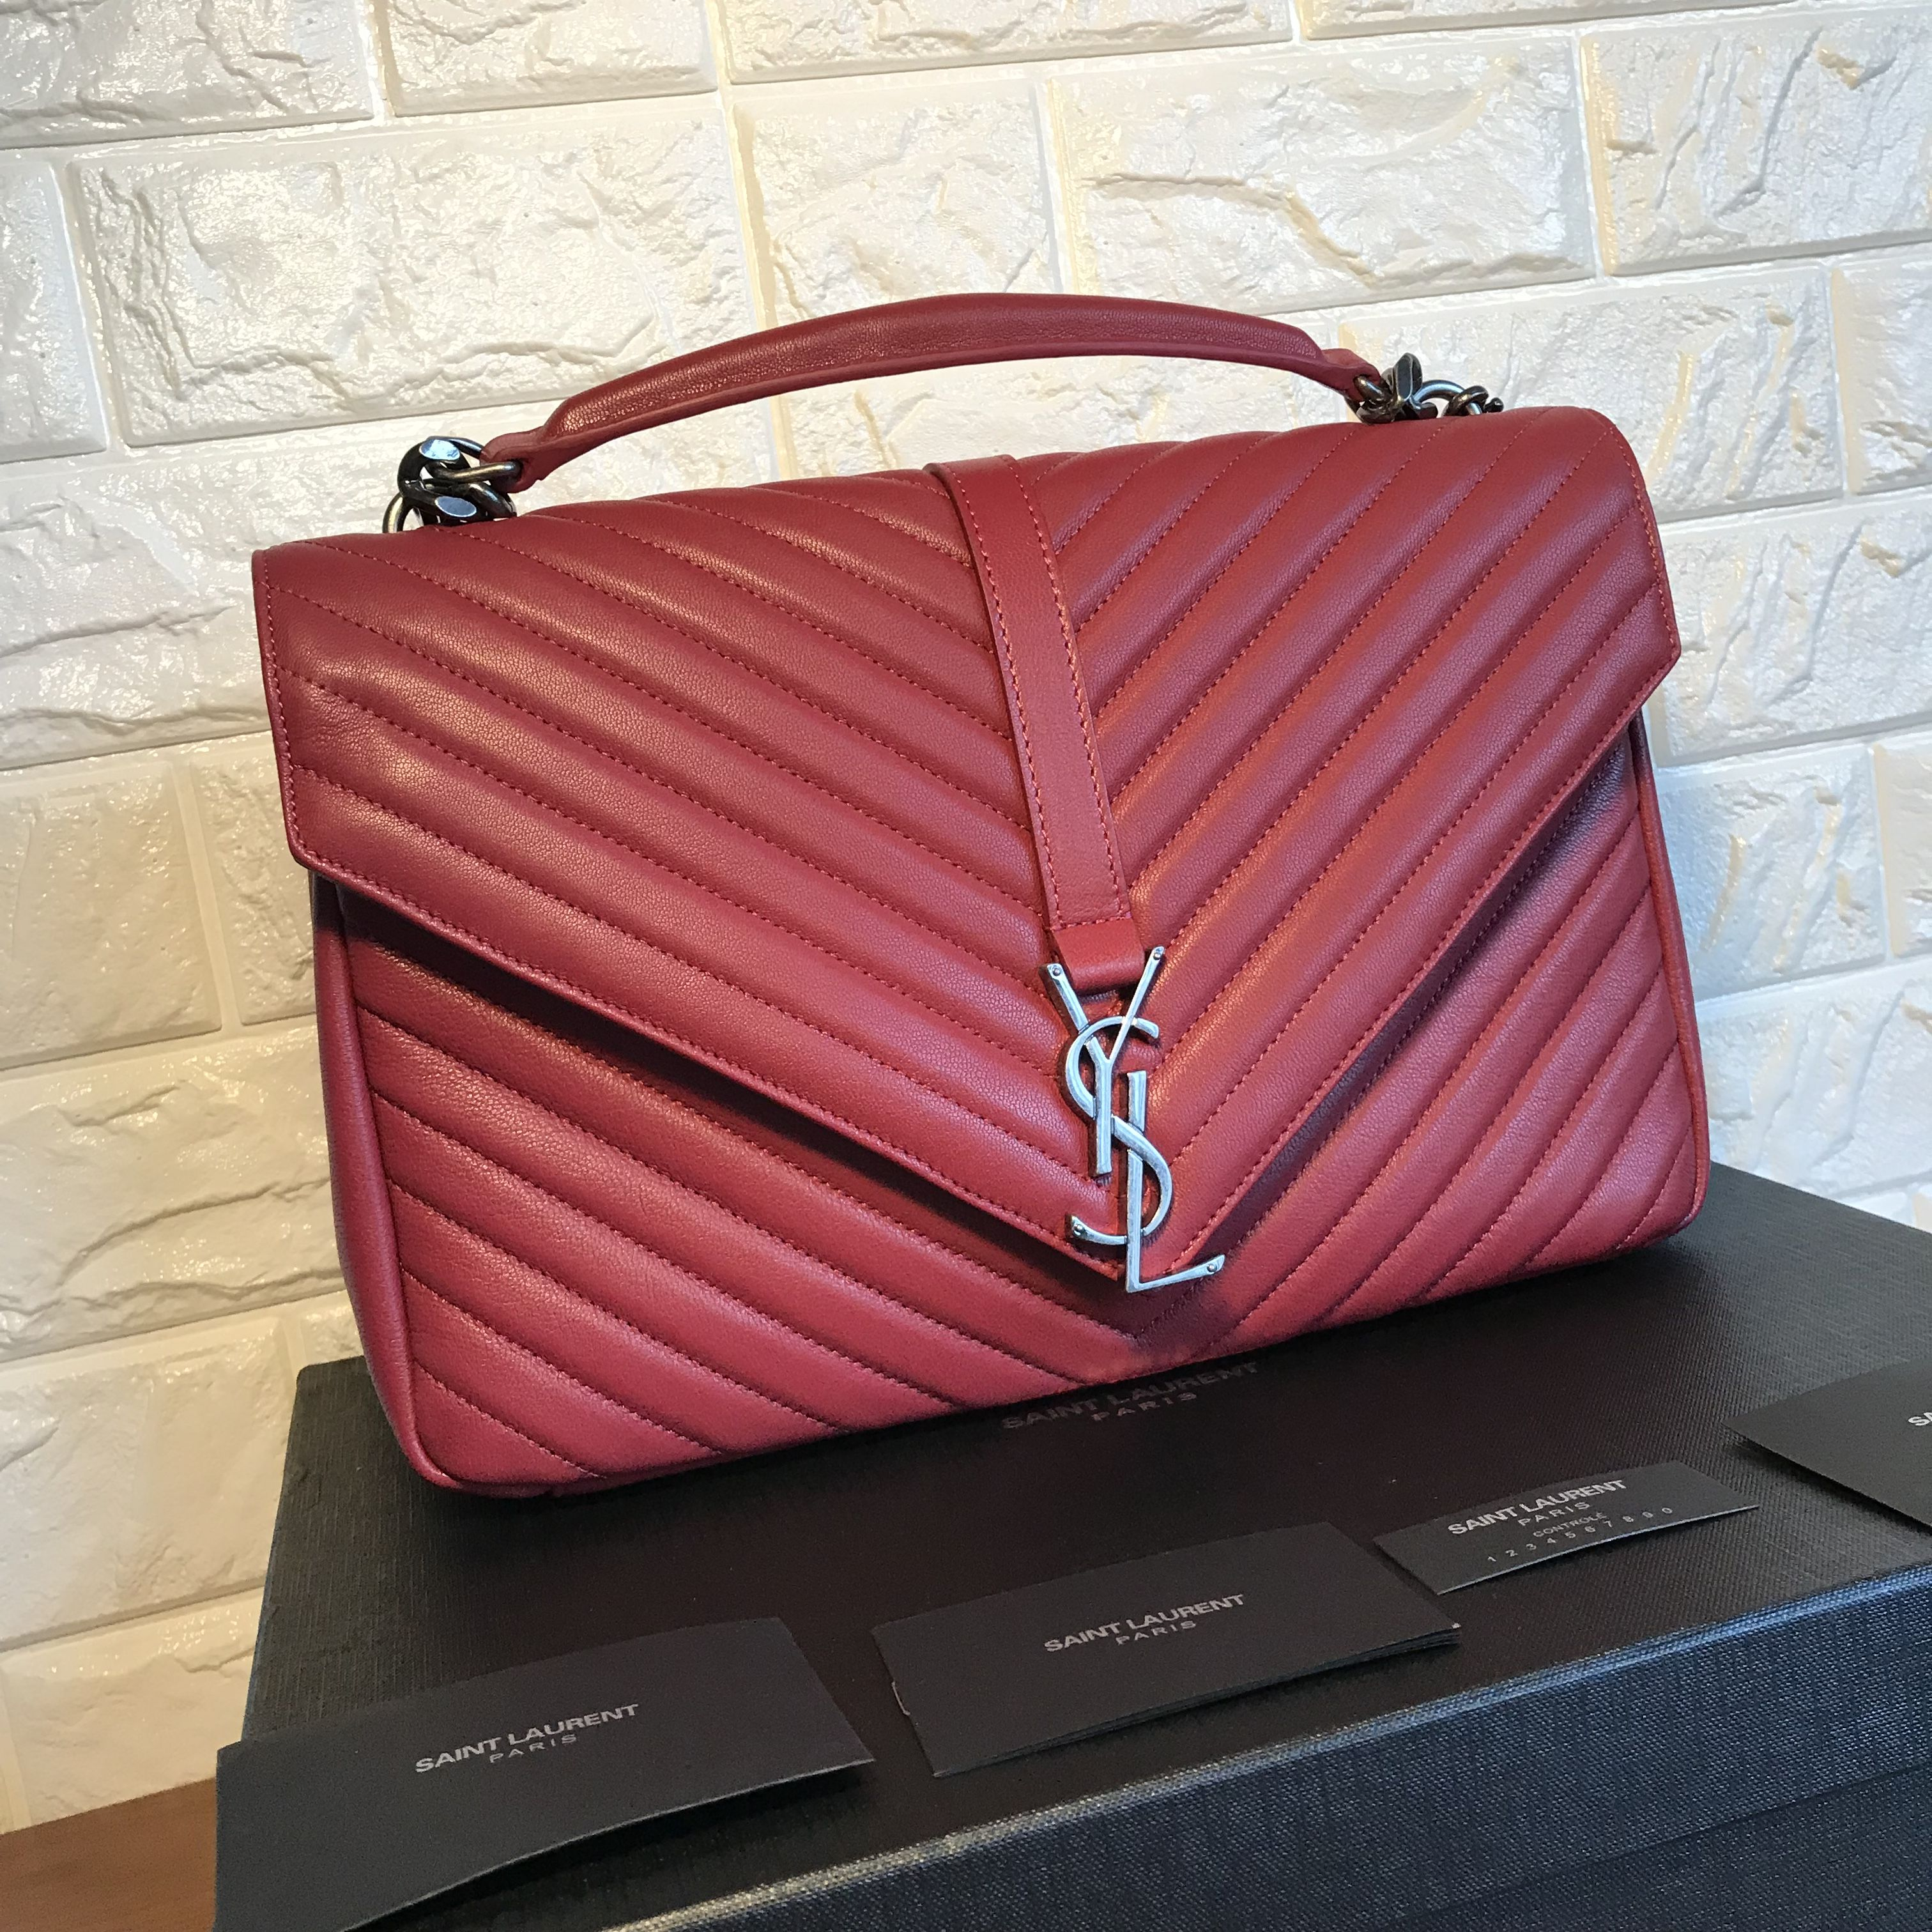 1f37bcd6a6 YSL Saint Laurent college bag red color original leather large size 32cm